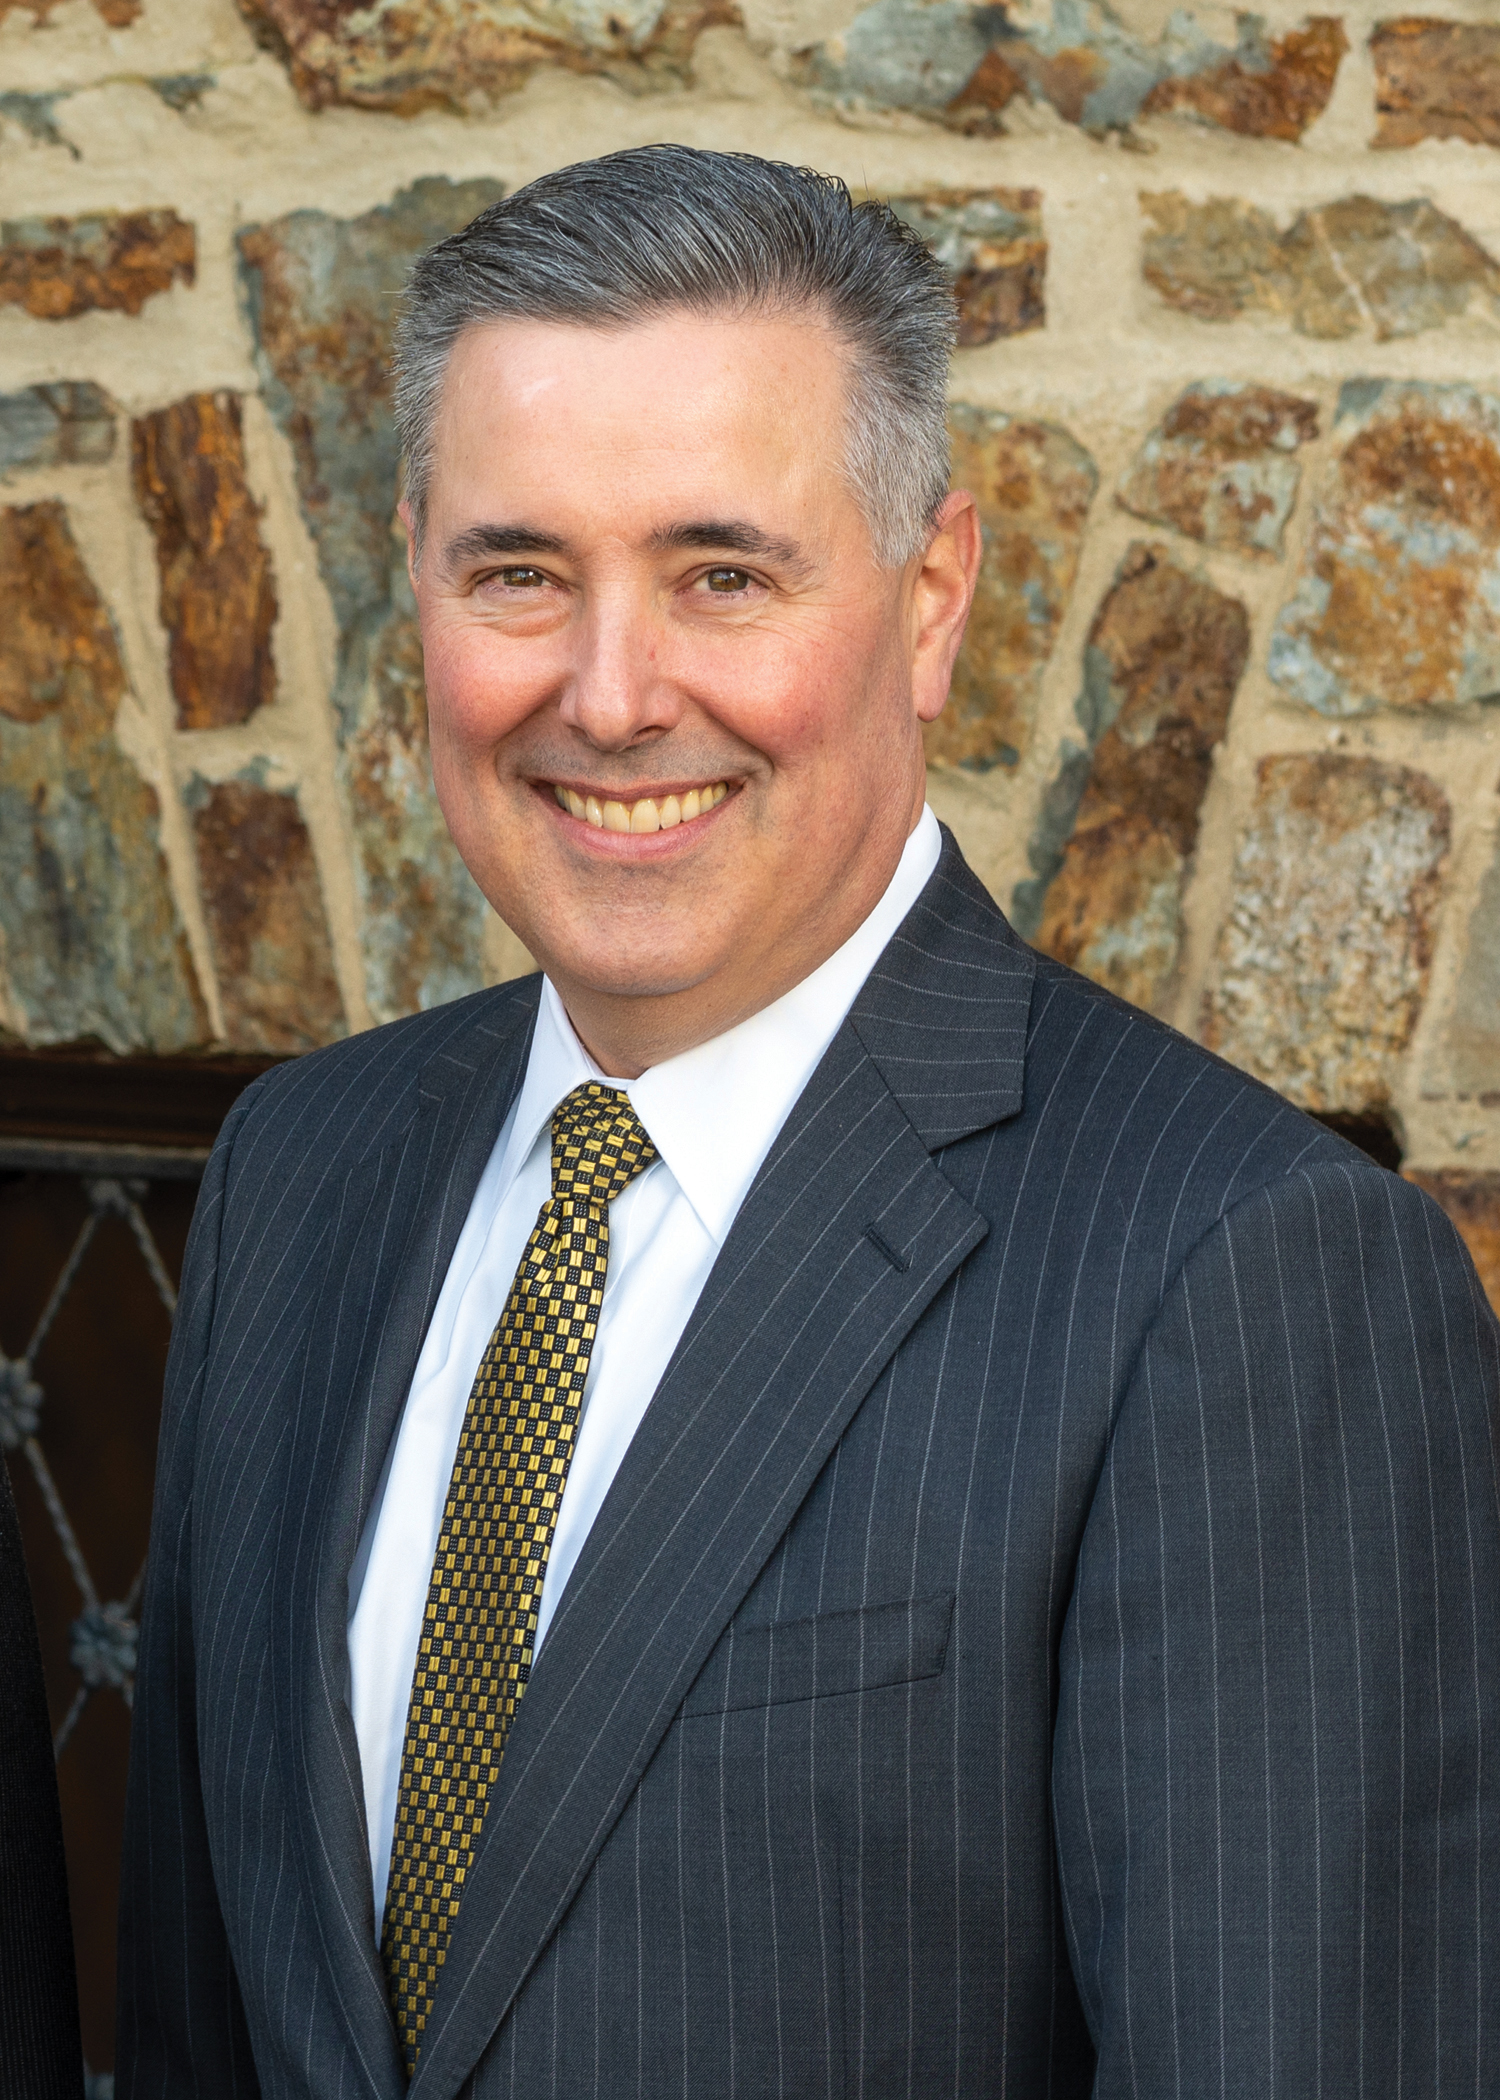 Eugene Draganosky, President and CEO of York Traditions Bank